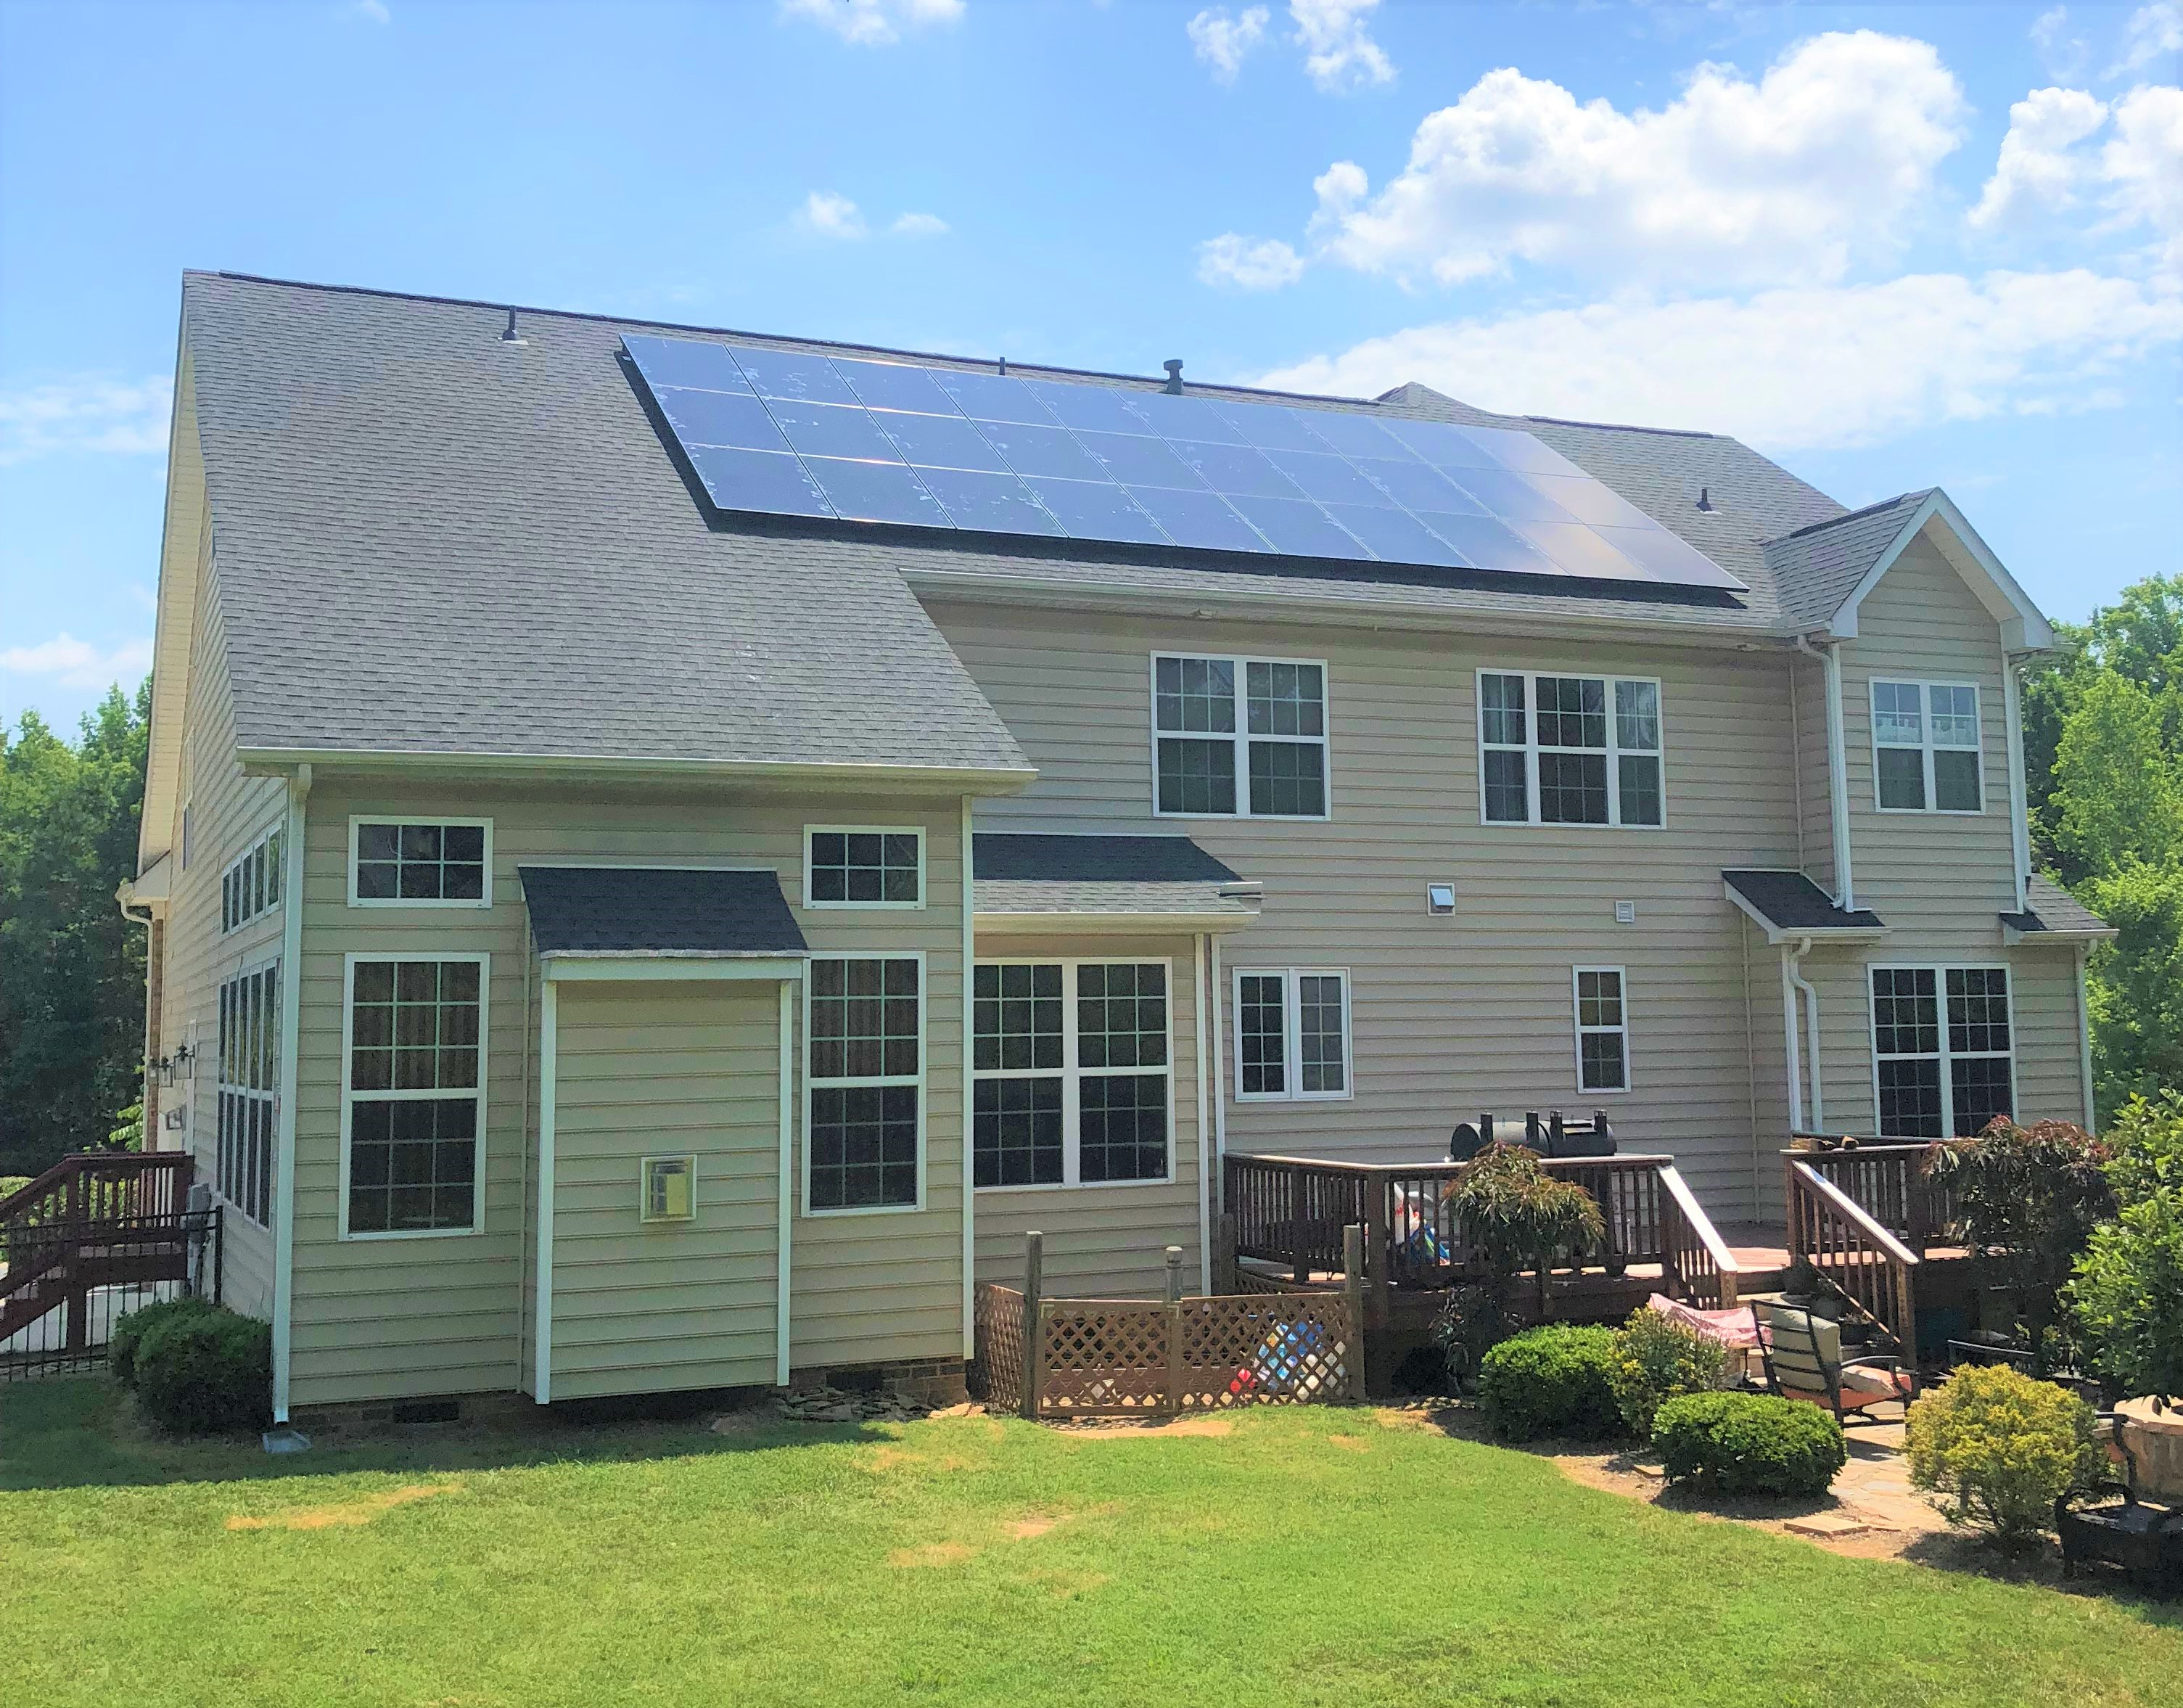 Solar - The Home Improvement That Builds Resilience in 2020